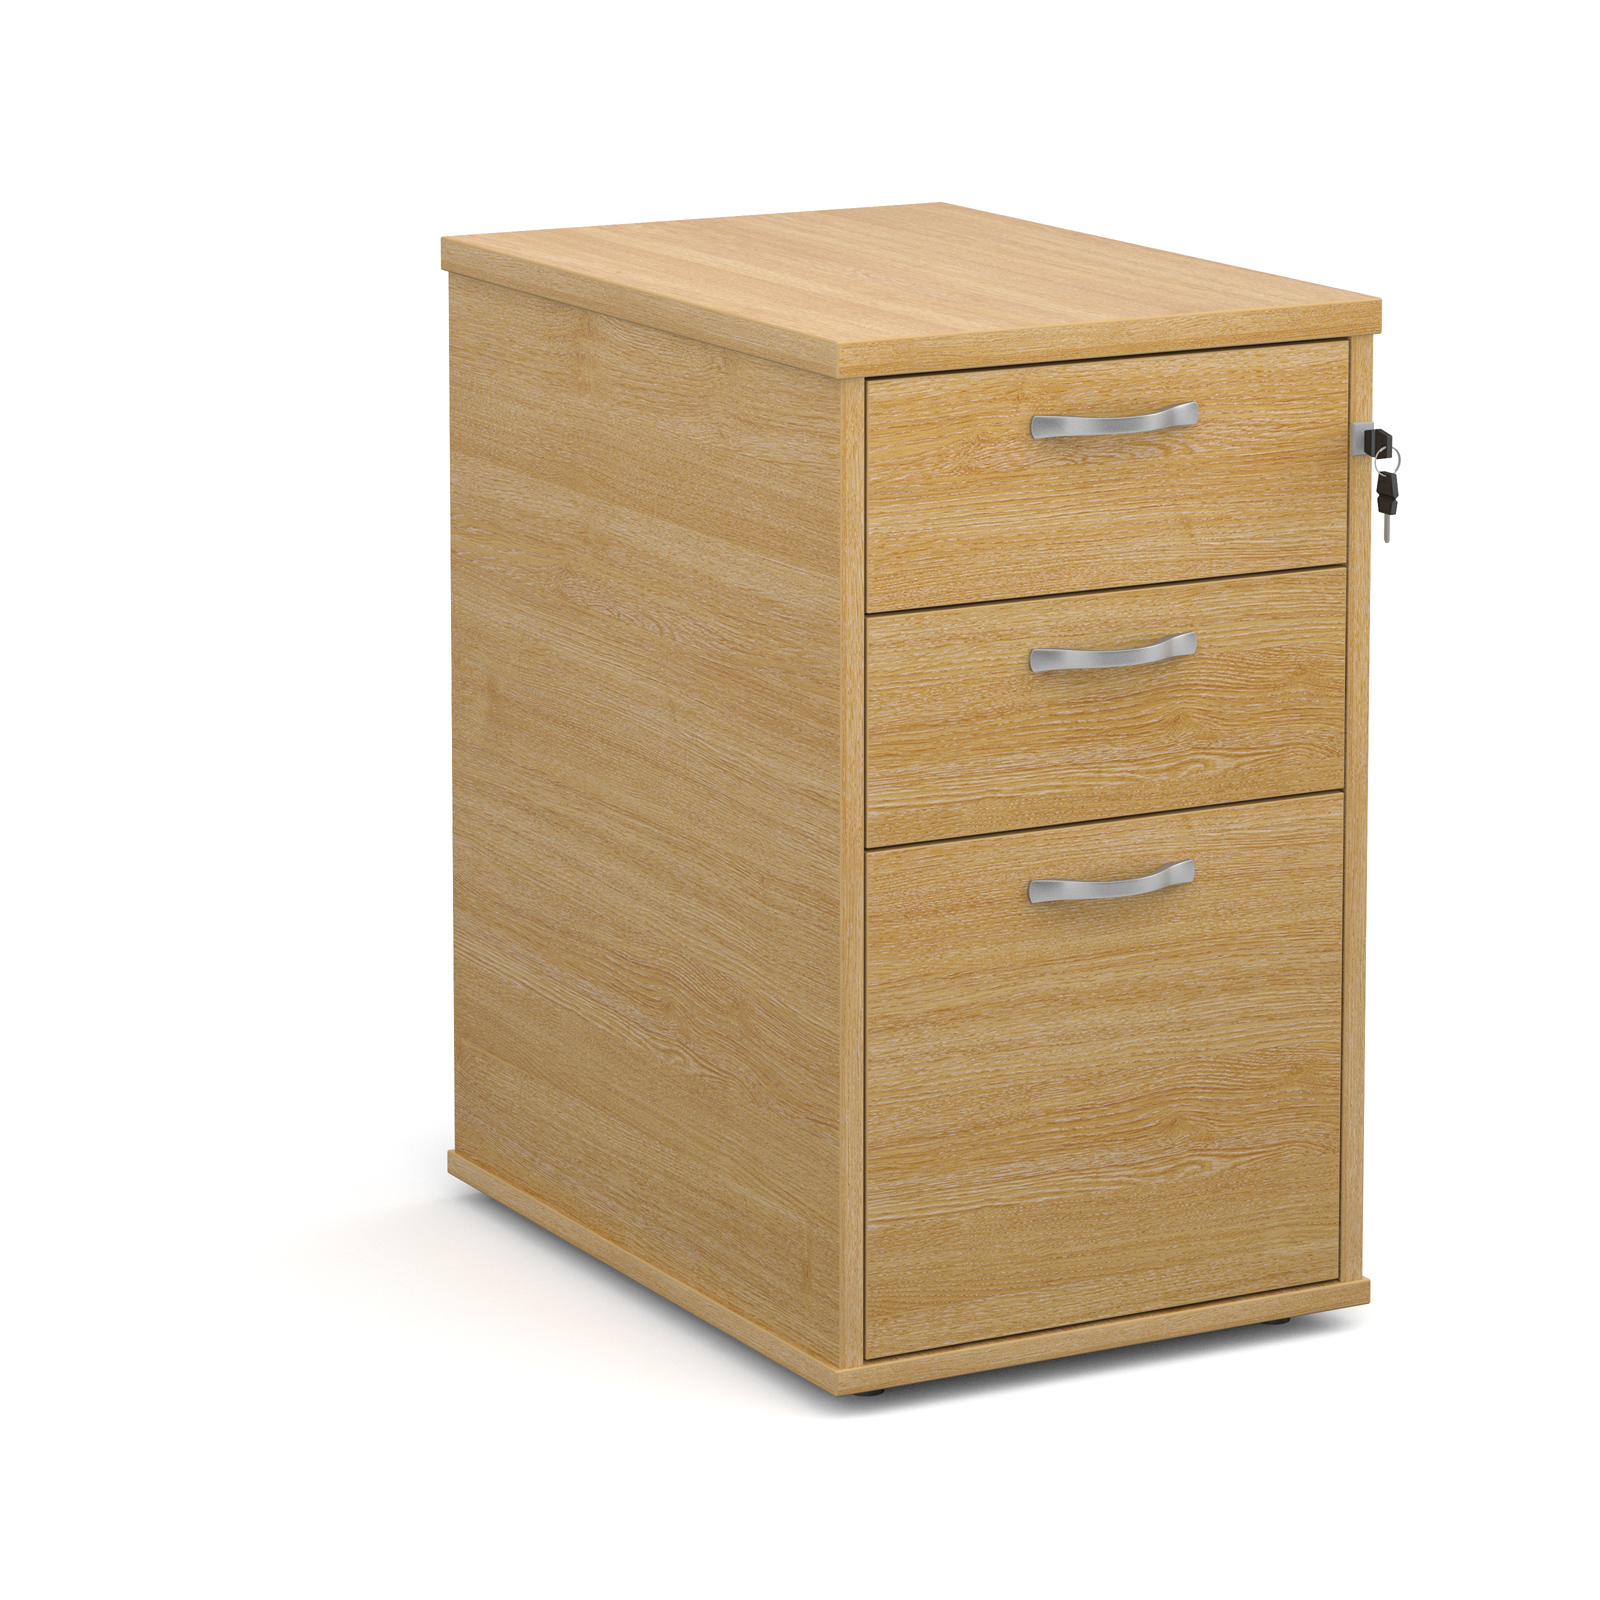 600mm Desk High 3 Drawer Pedestal in oak